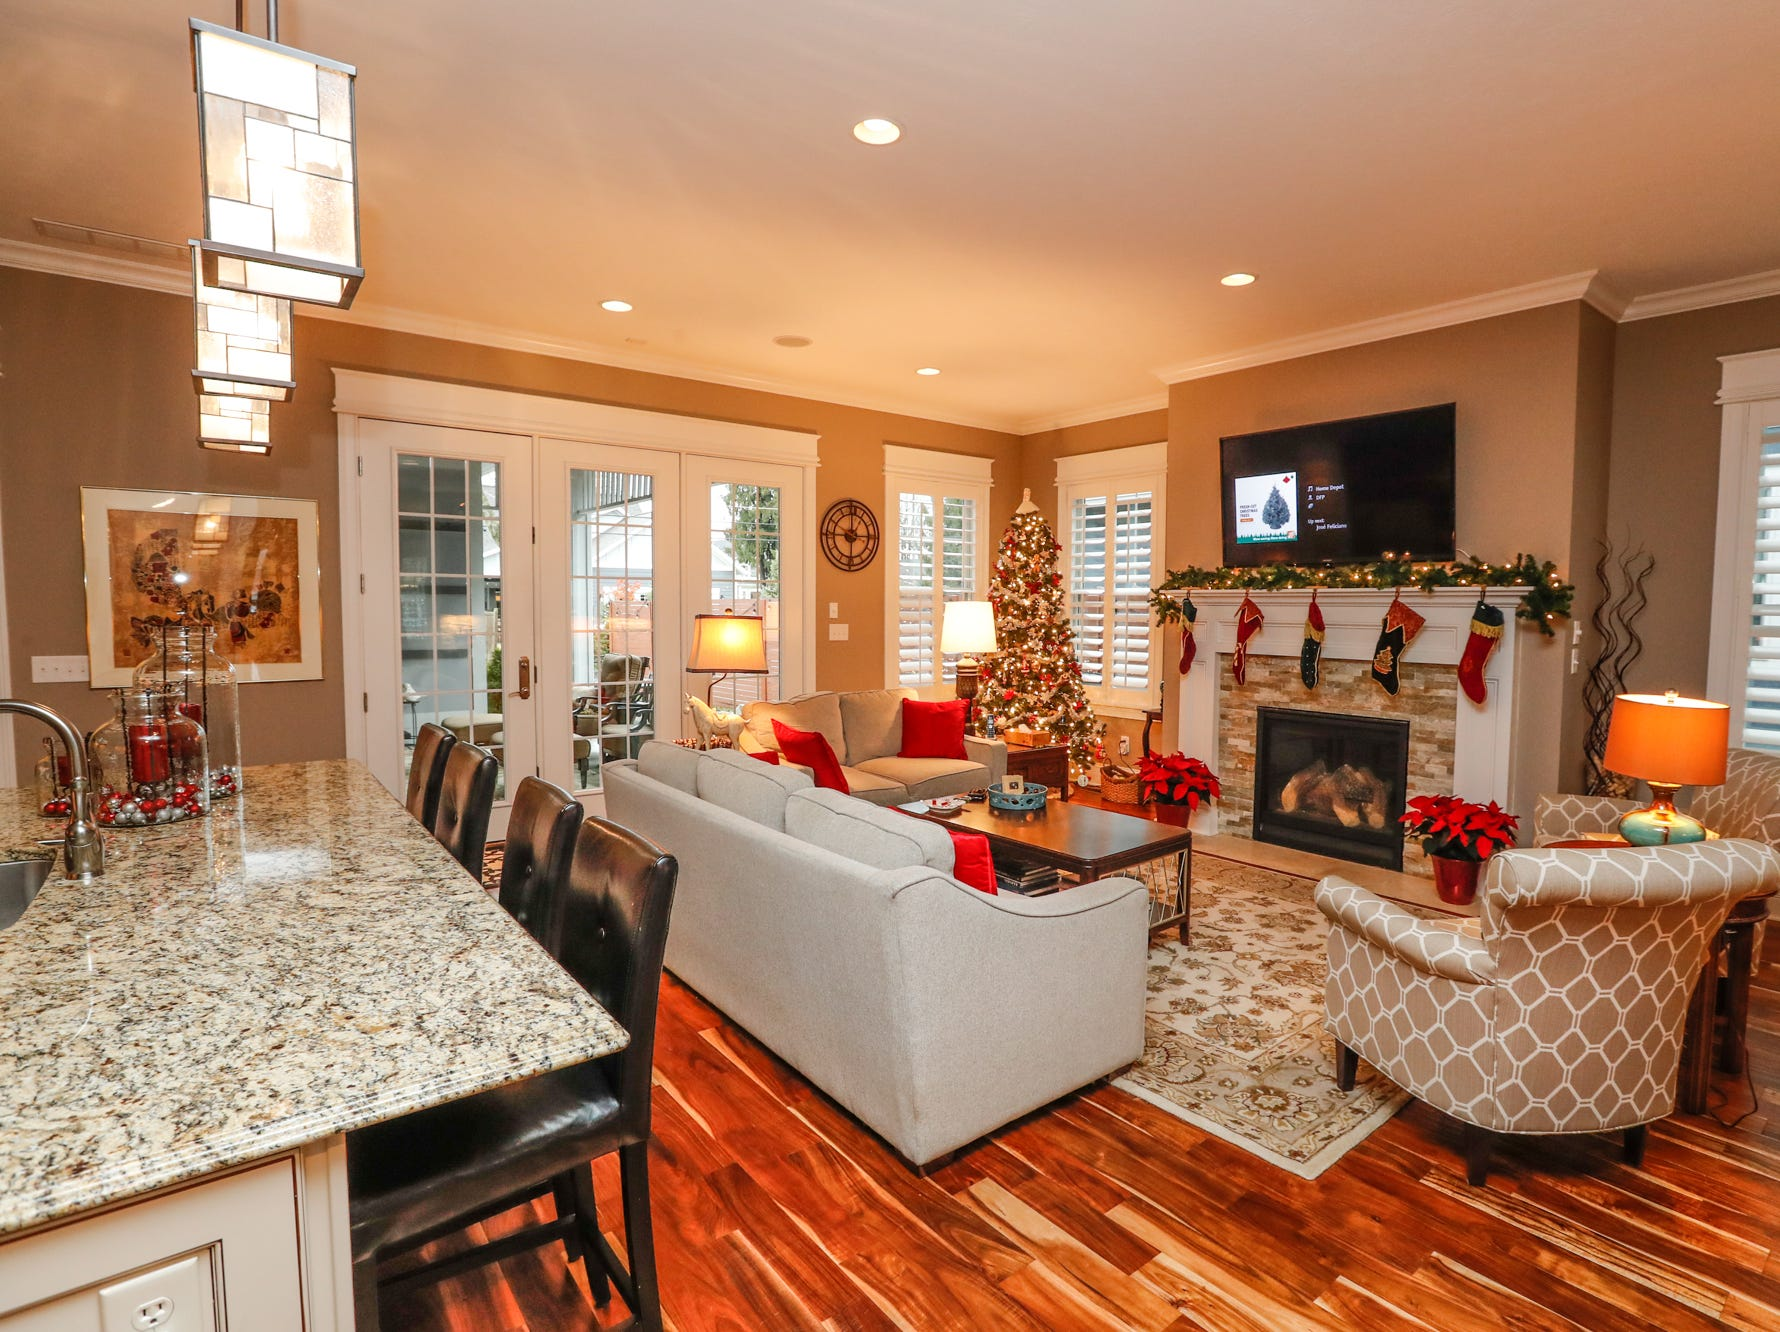 The 2013 crafts-man-style home of Sue Maki and Tom Kapostasy offers an open floor plan and more during the Carmel Clay Historical Society Holiday Home Tour in Carmel Ind. on Saturday, Dec.1, 2018. The home has 4,100+ sq. Ft., and sits on land where the Blackwell home once stood.